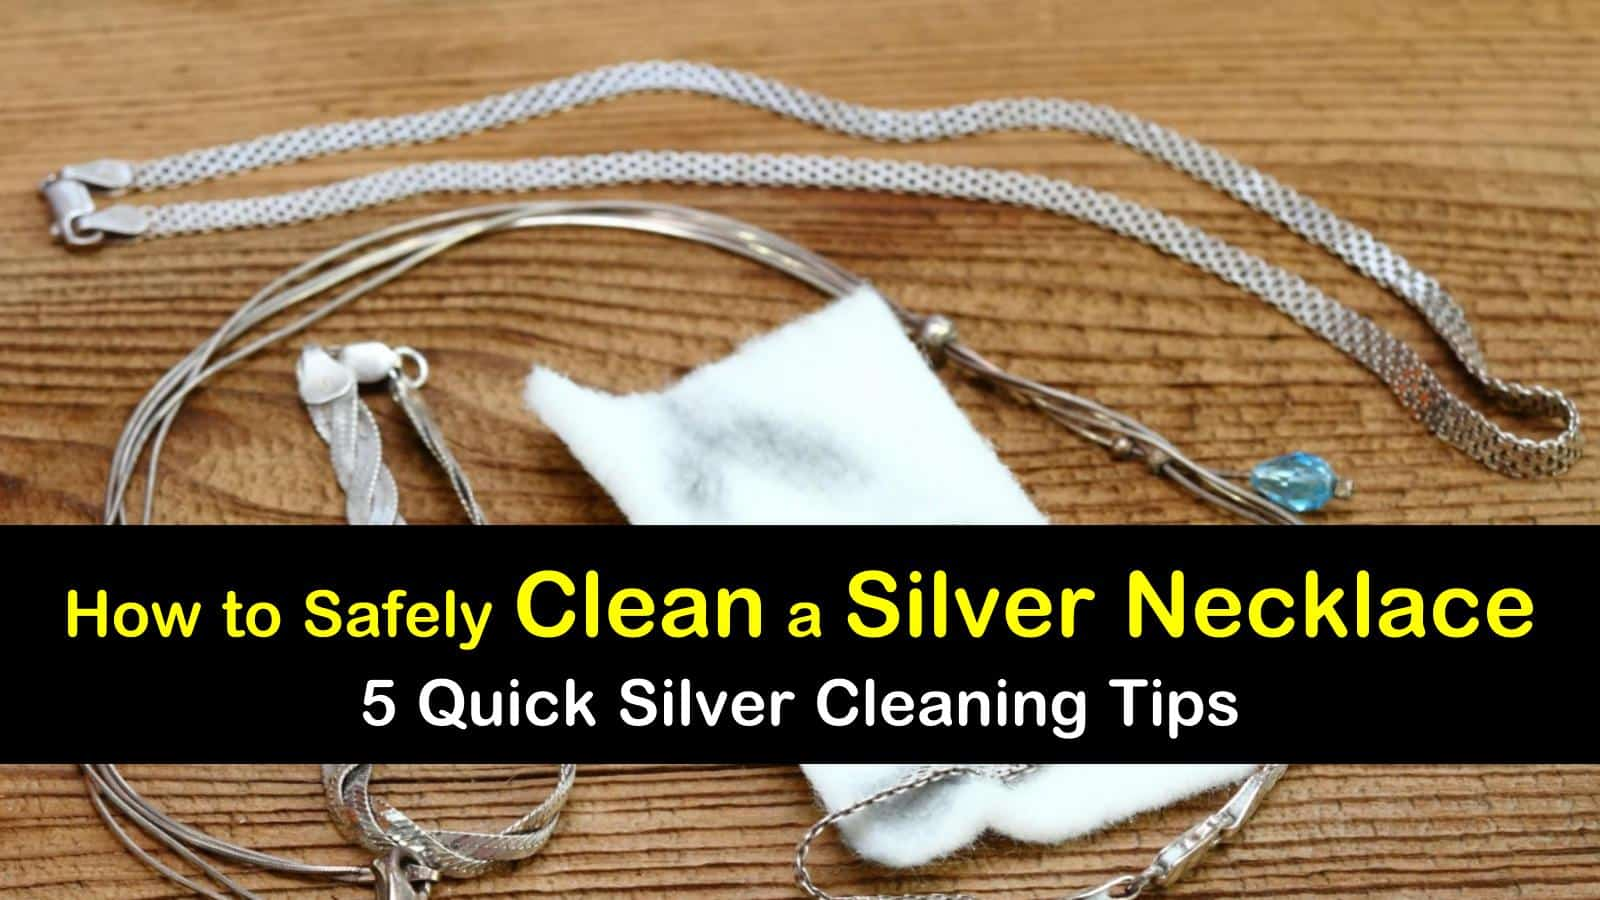 how to clean a silver necklace titleimg1